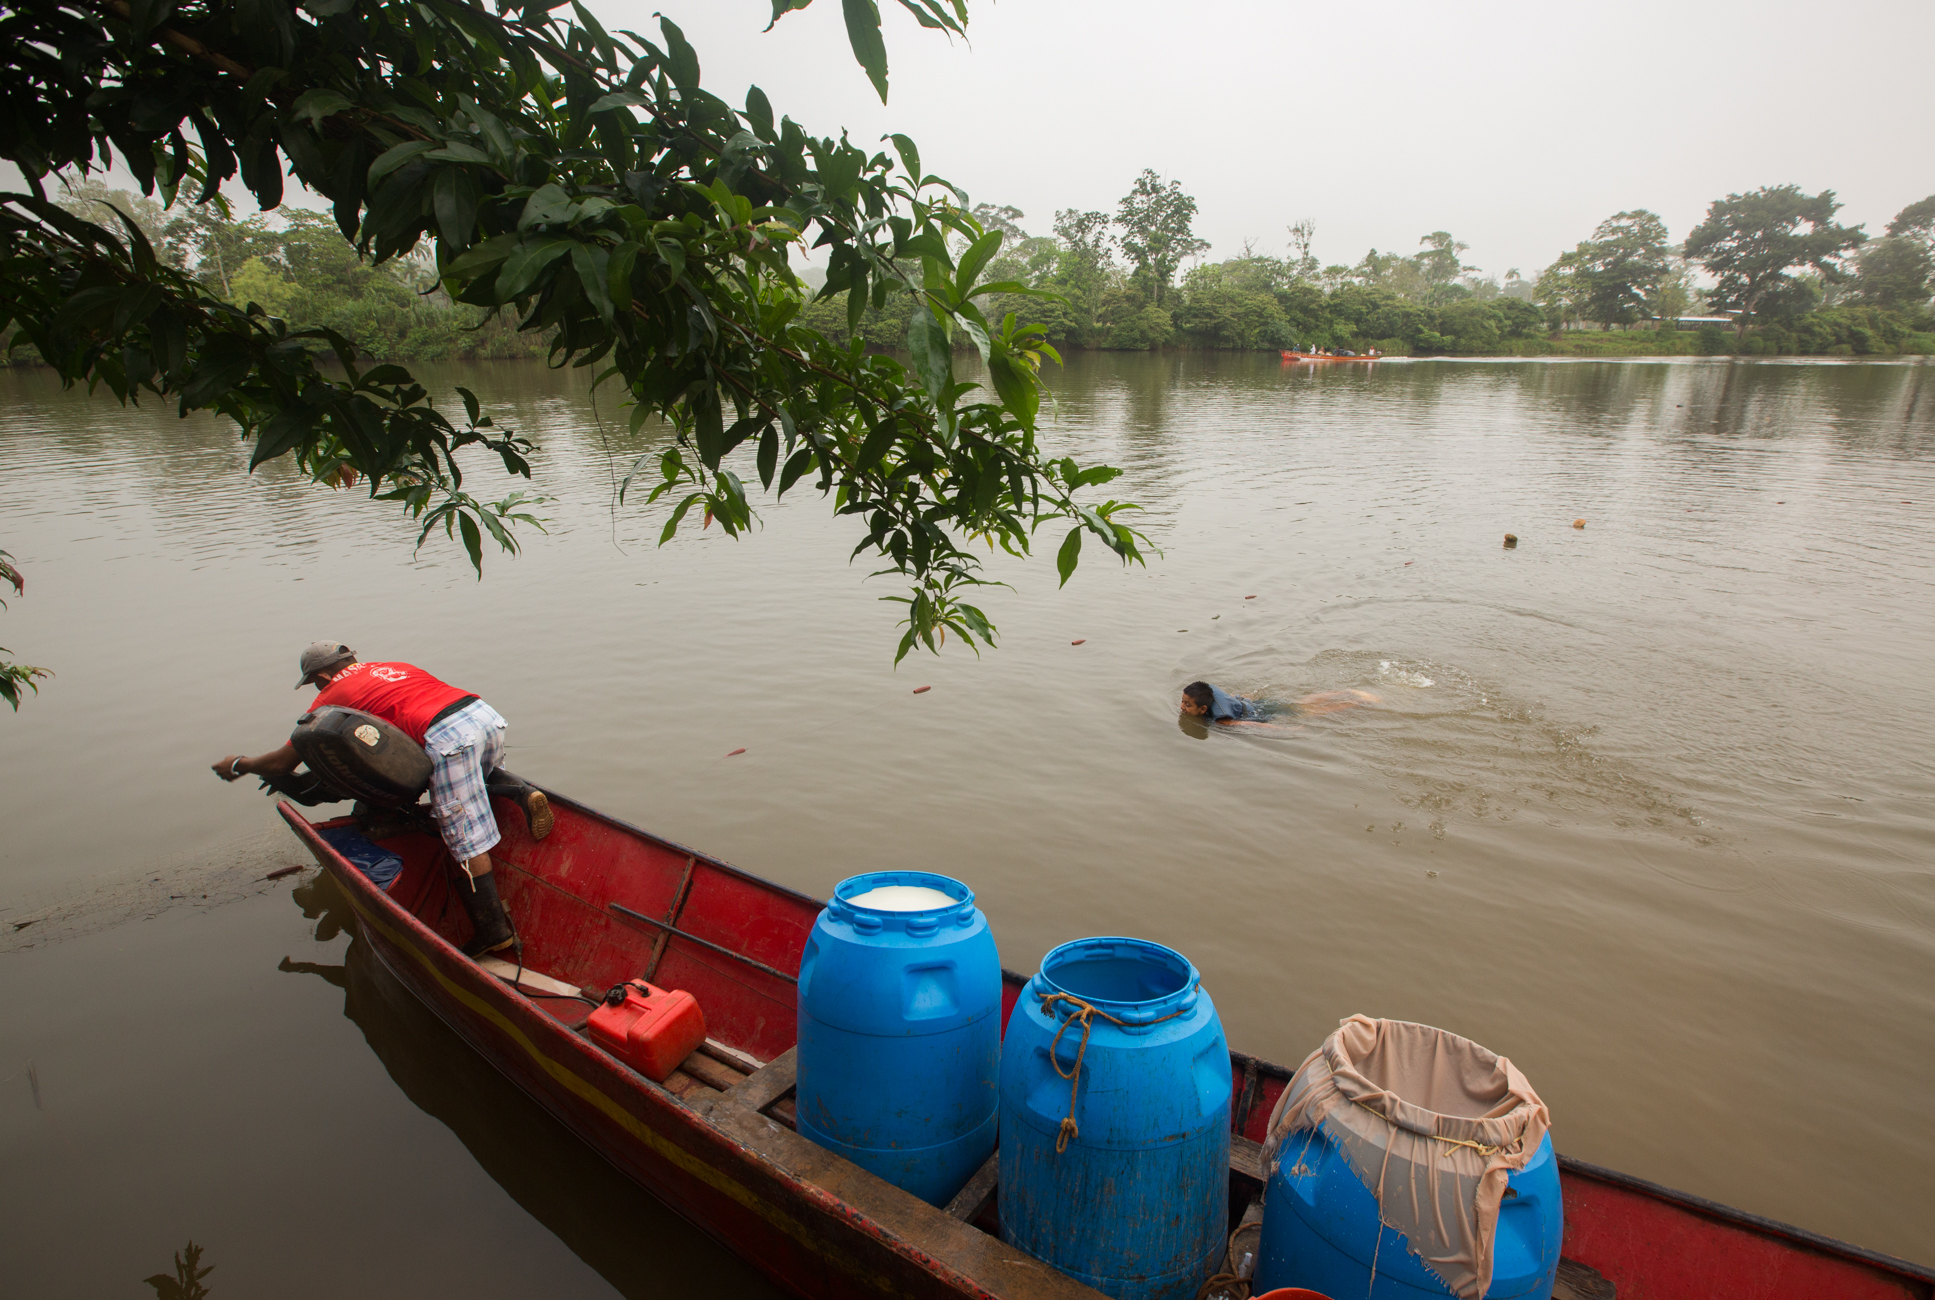 A man travels by boat to buy freshly produced milk from famers in the Paolo Bonito community on the Punta Gorda river in the early morning. If the Gran Canal project were to go forward, the river would be dredged as a shipping lane for cargo ships to pass from the Caribbean to the Pacific, removing farmer and indigenous communities.